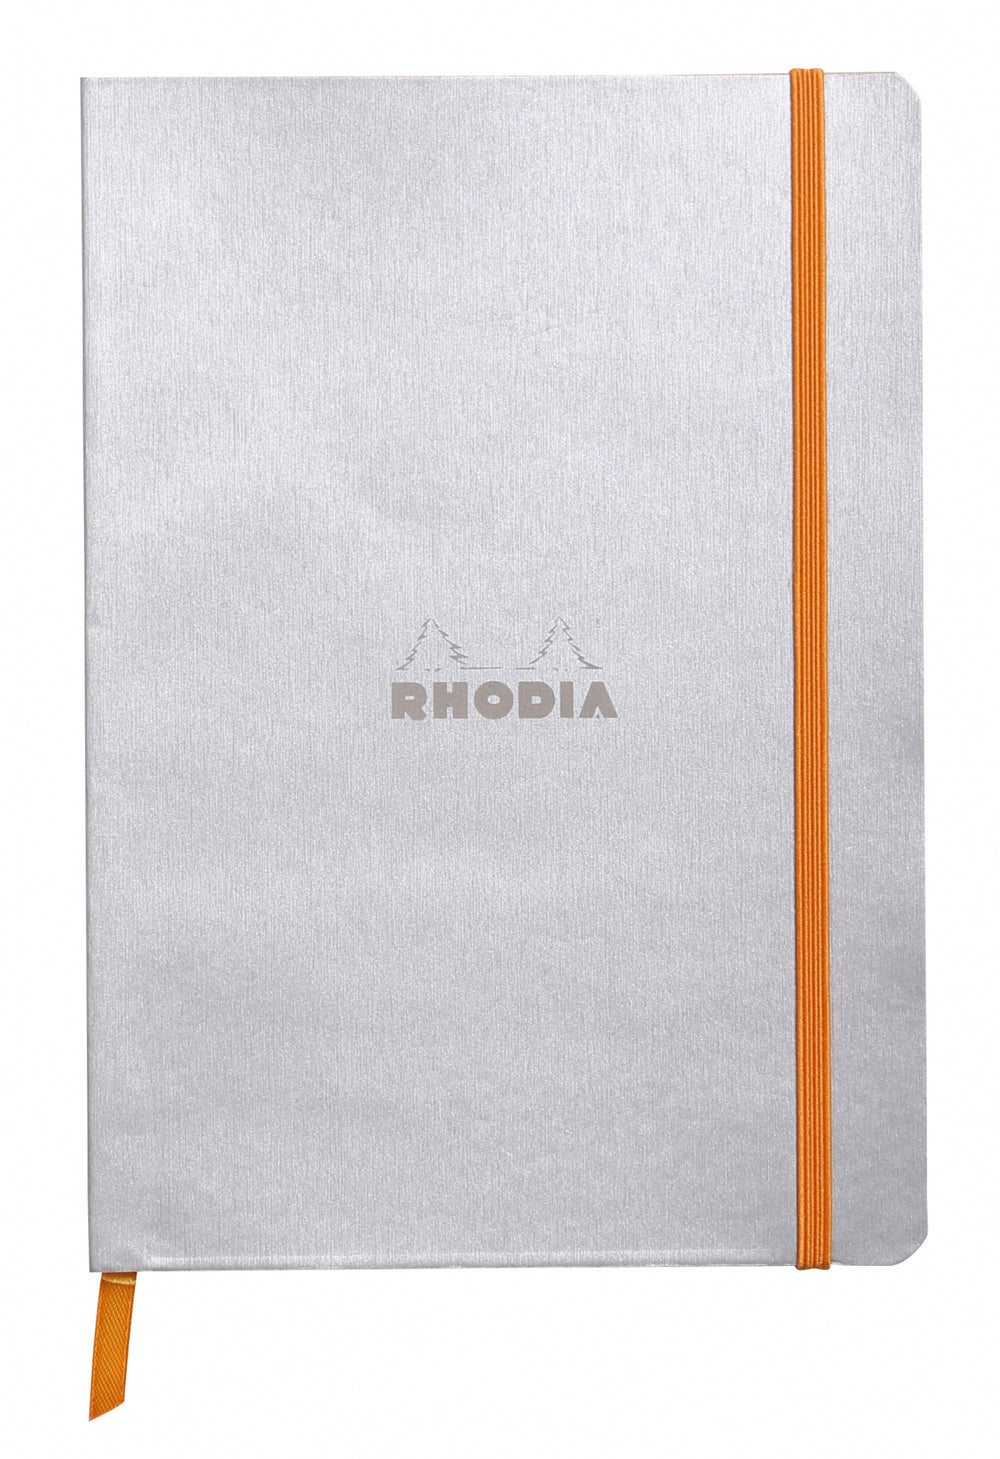 "Rhodia Soft Cover Rhodiarama 7.5"" x 9.75"" Notebook Silver"